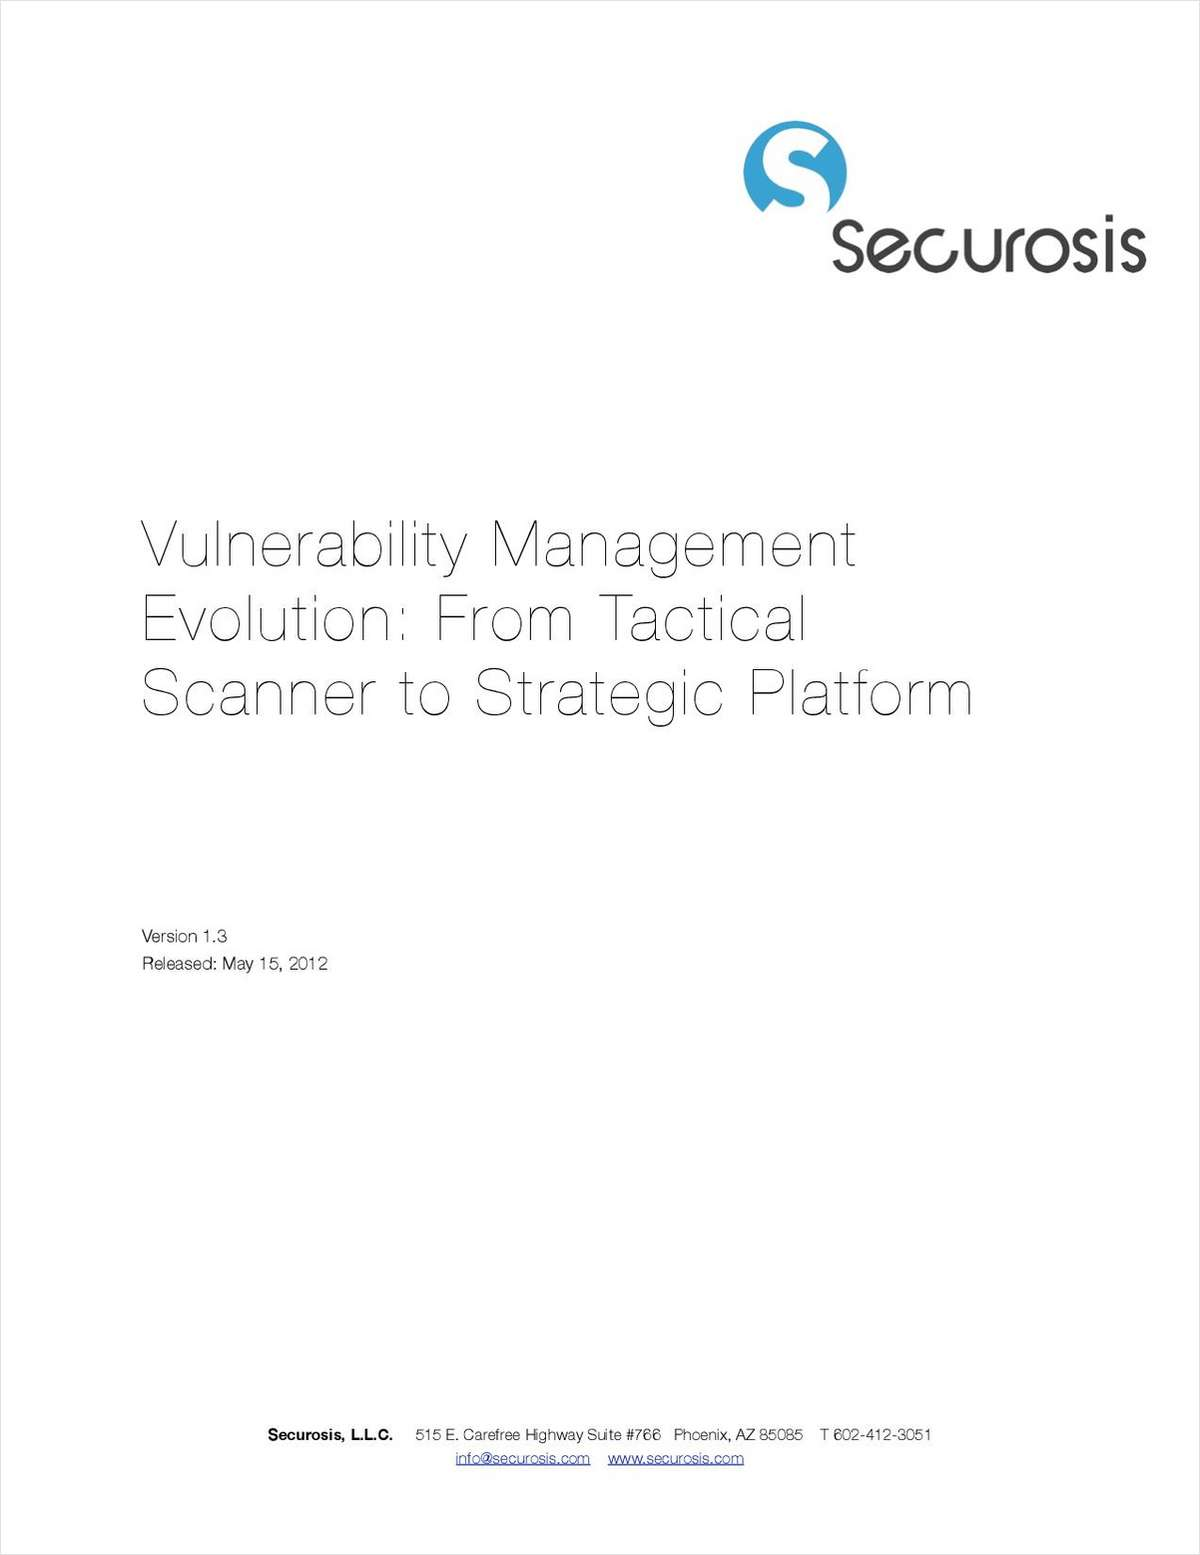 Vulnerability Management Evolution: From Tactical Scanner to Strategic Platform